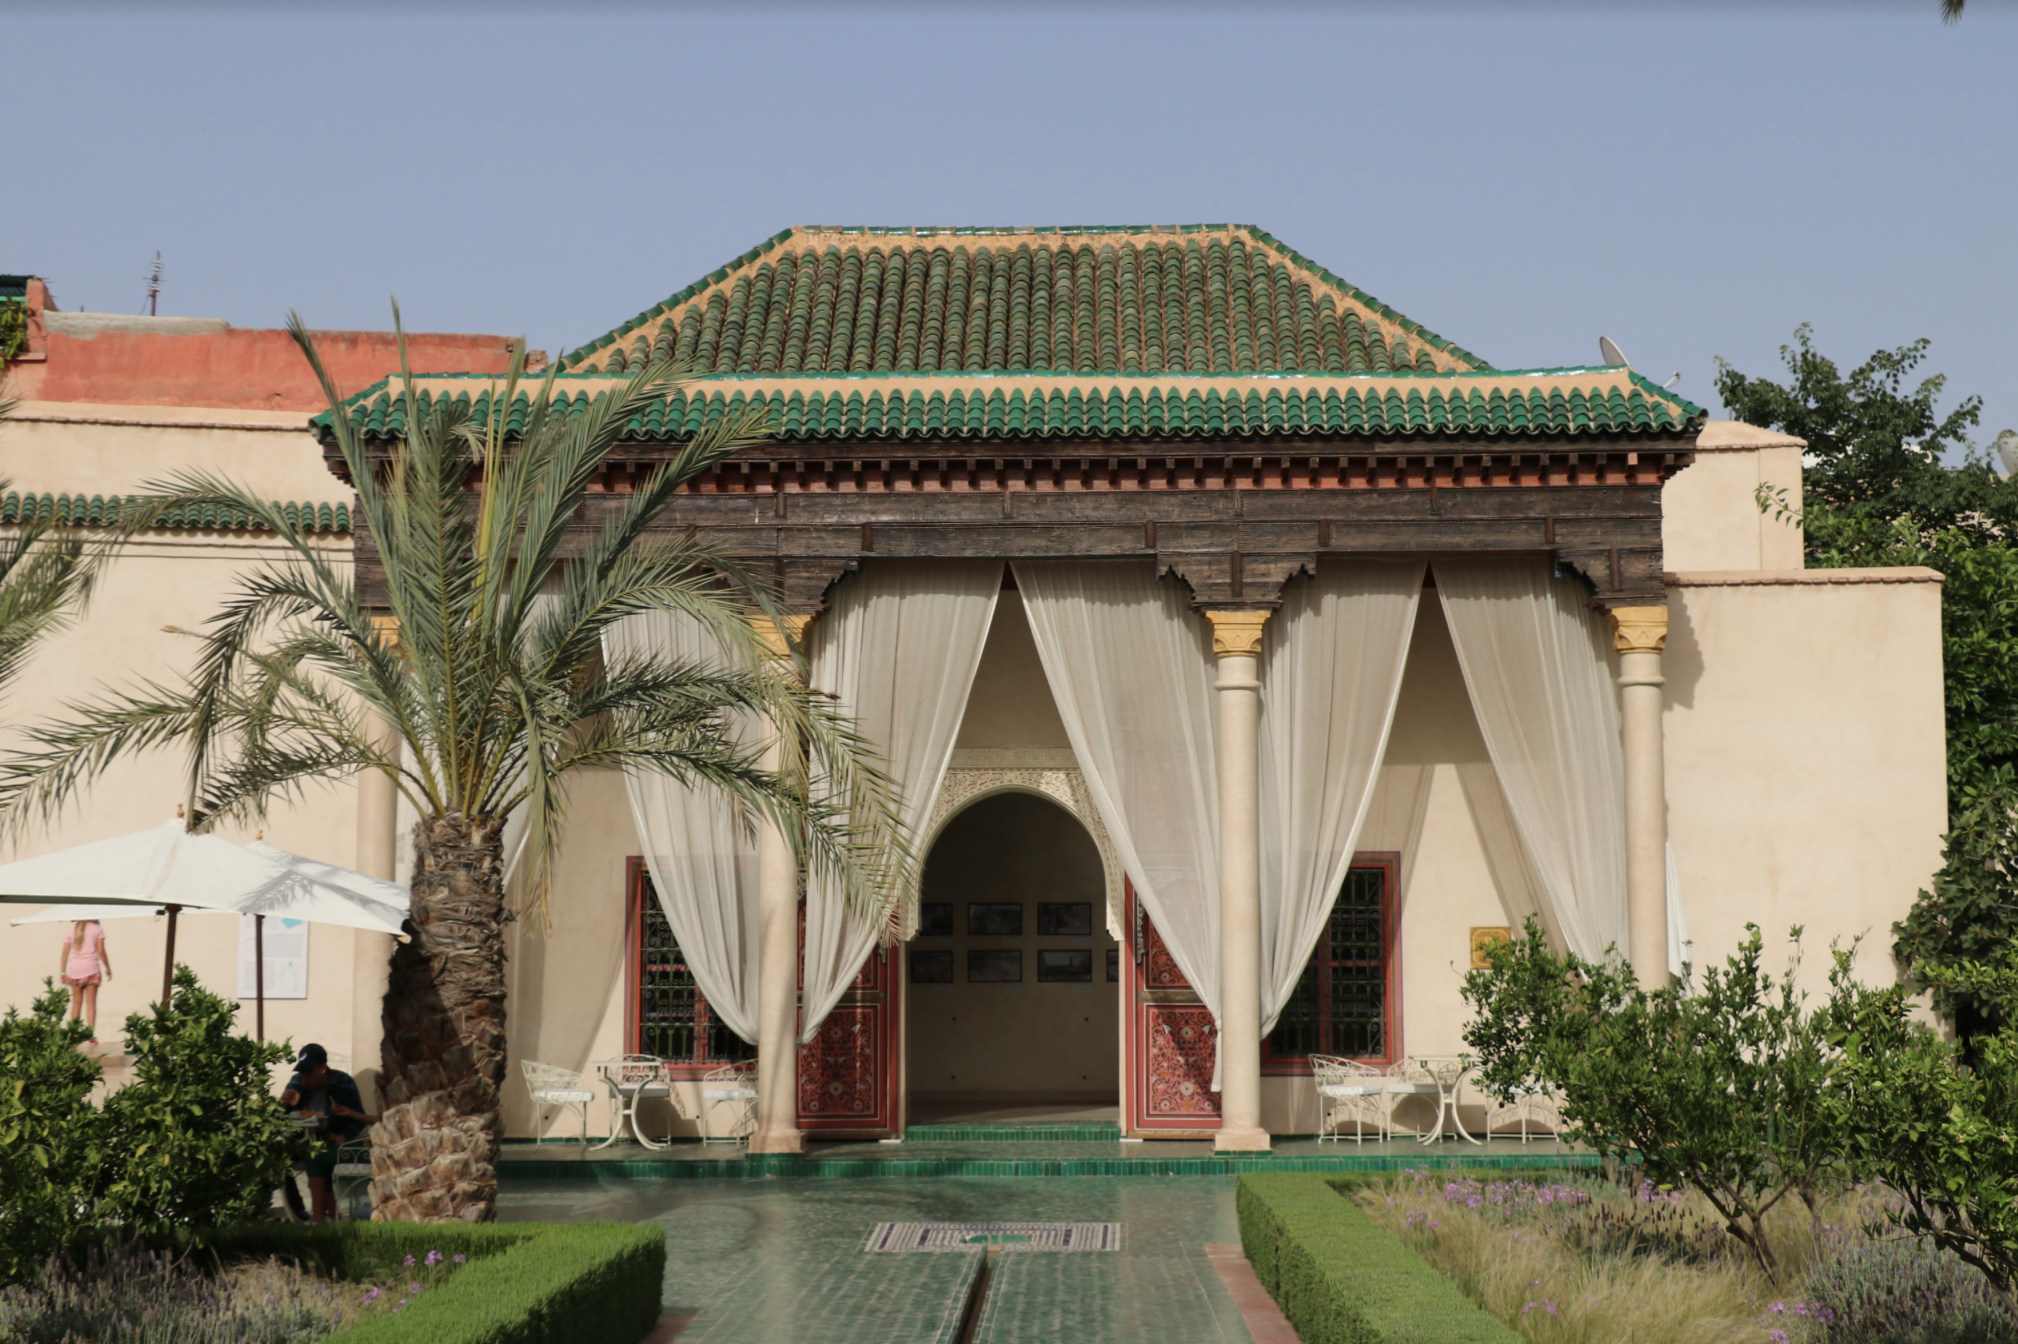 Islamic influences in Morocco